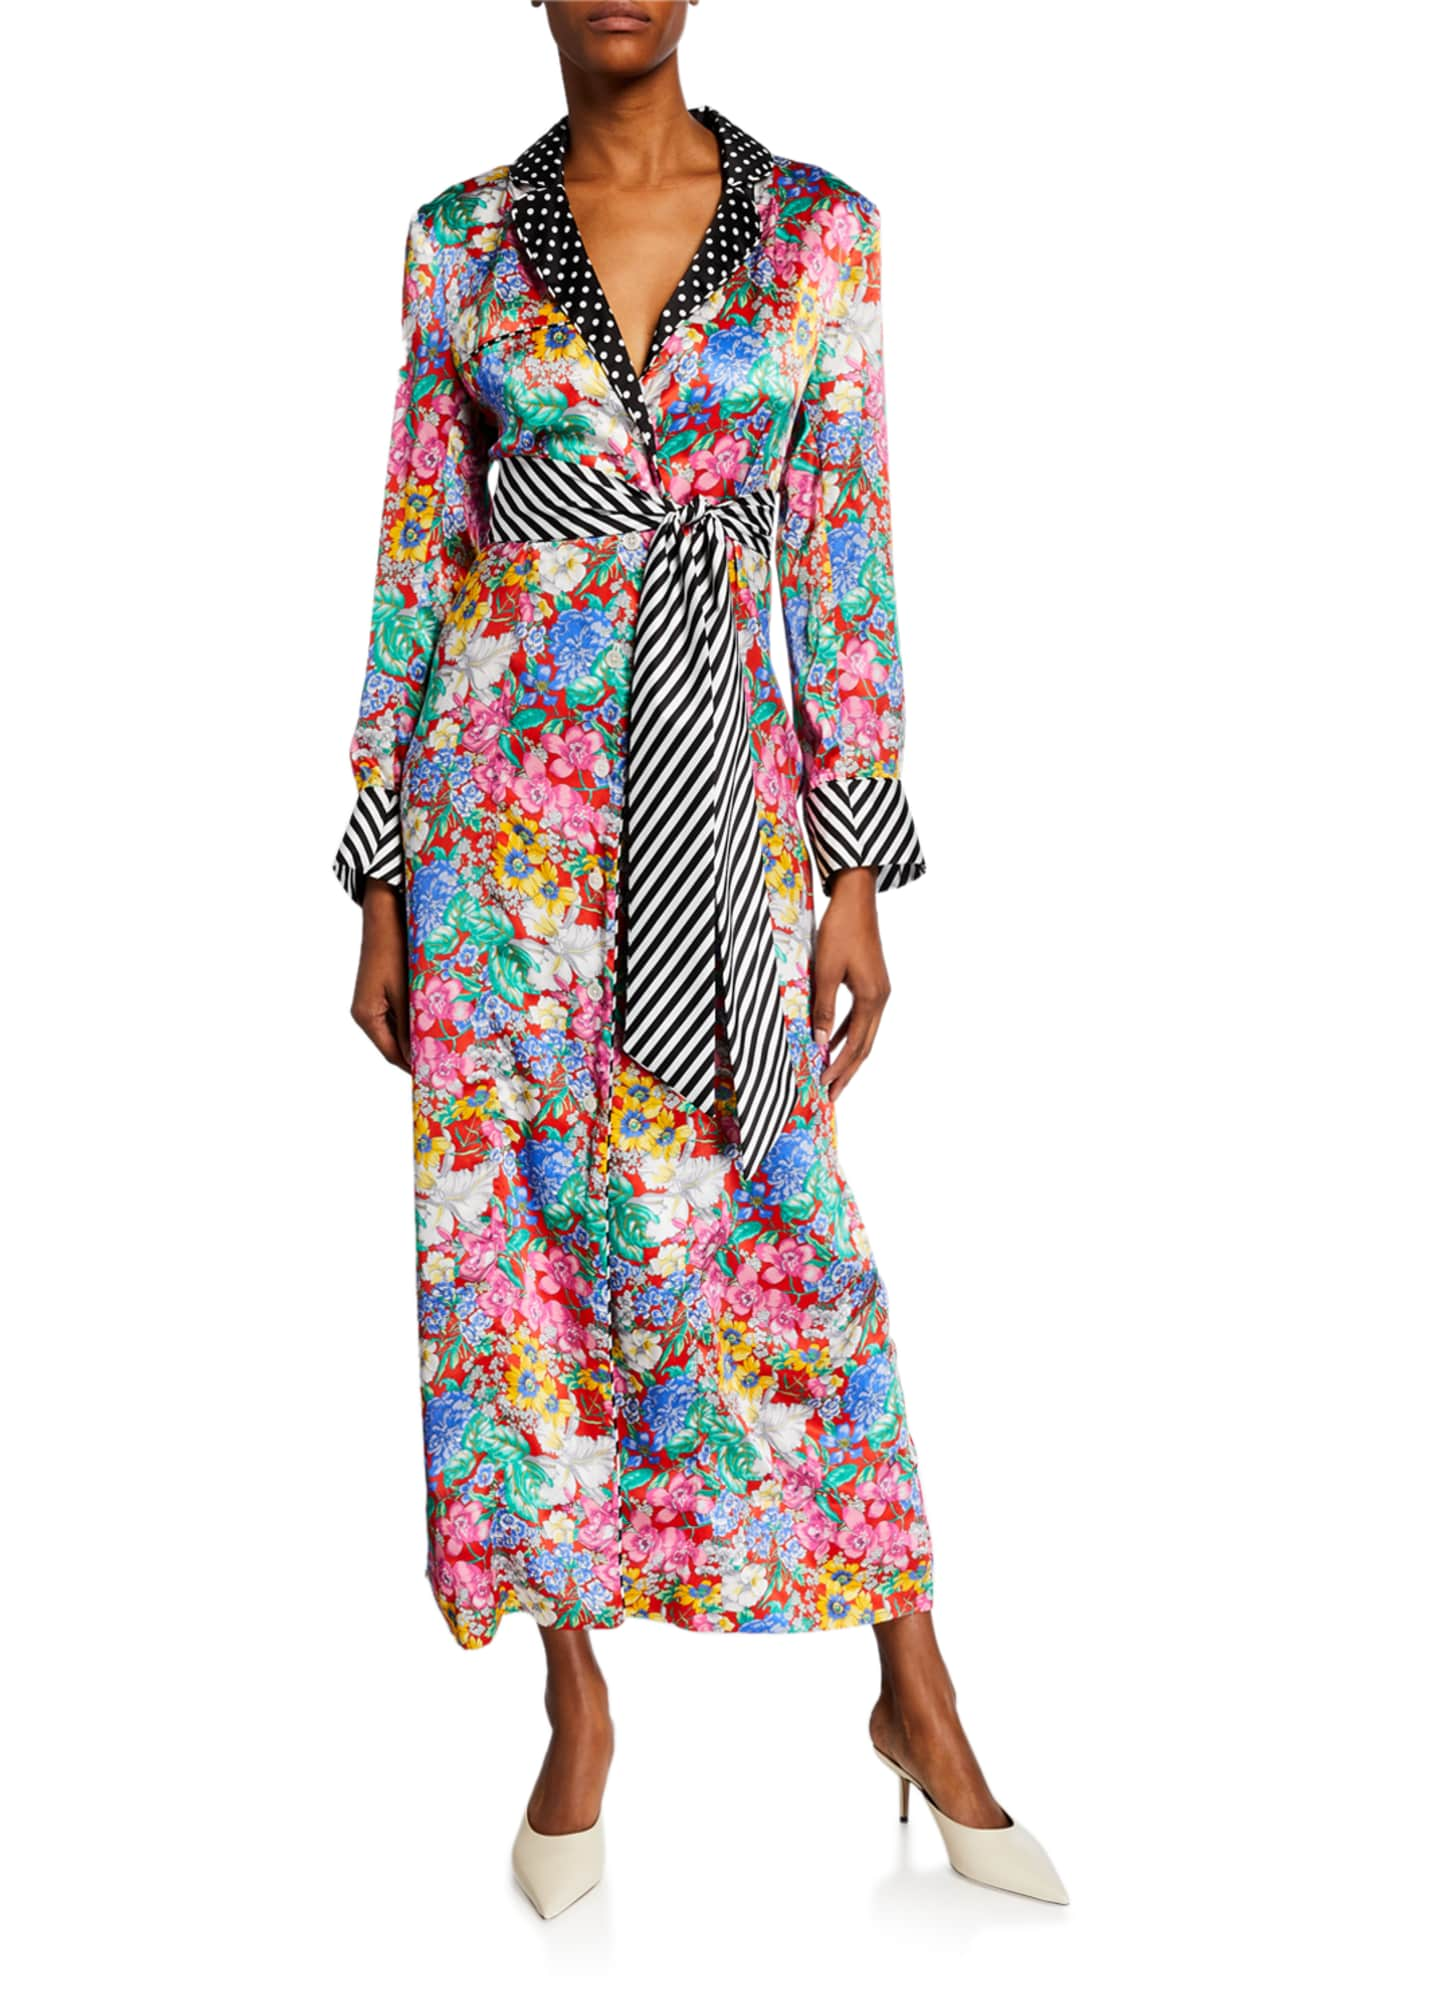 Aquazzura x Racil Polka-Dot Trim Floral Robe Jacket